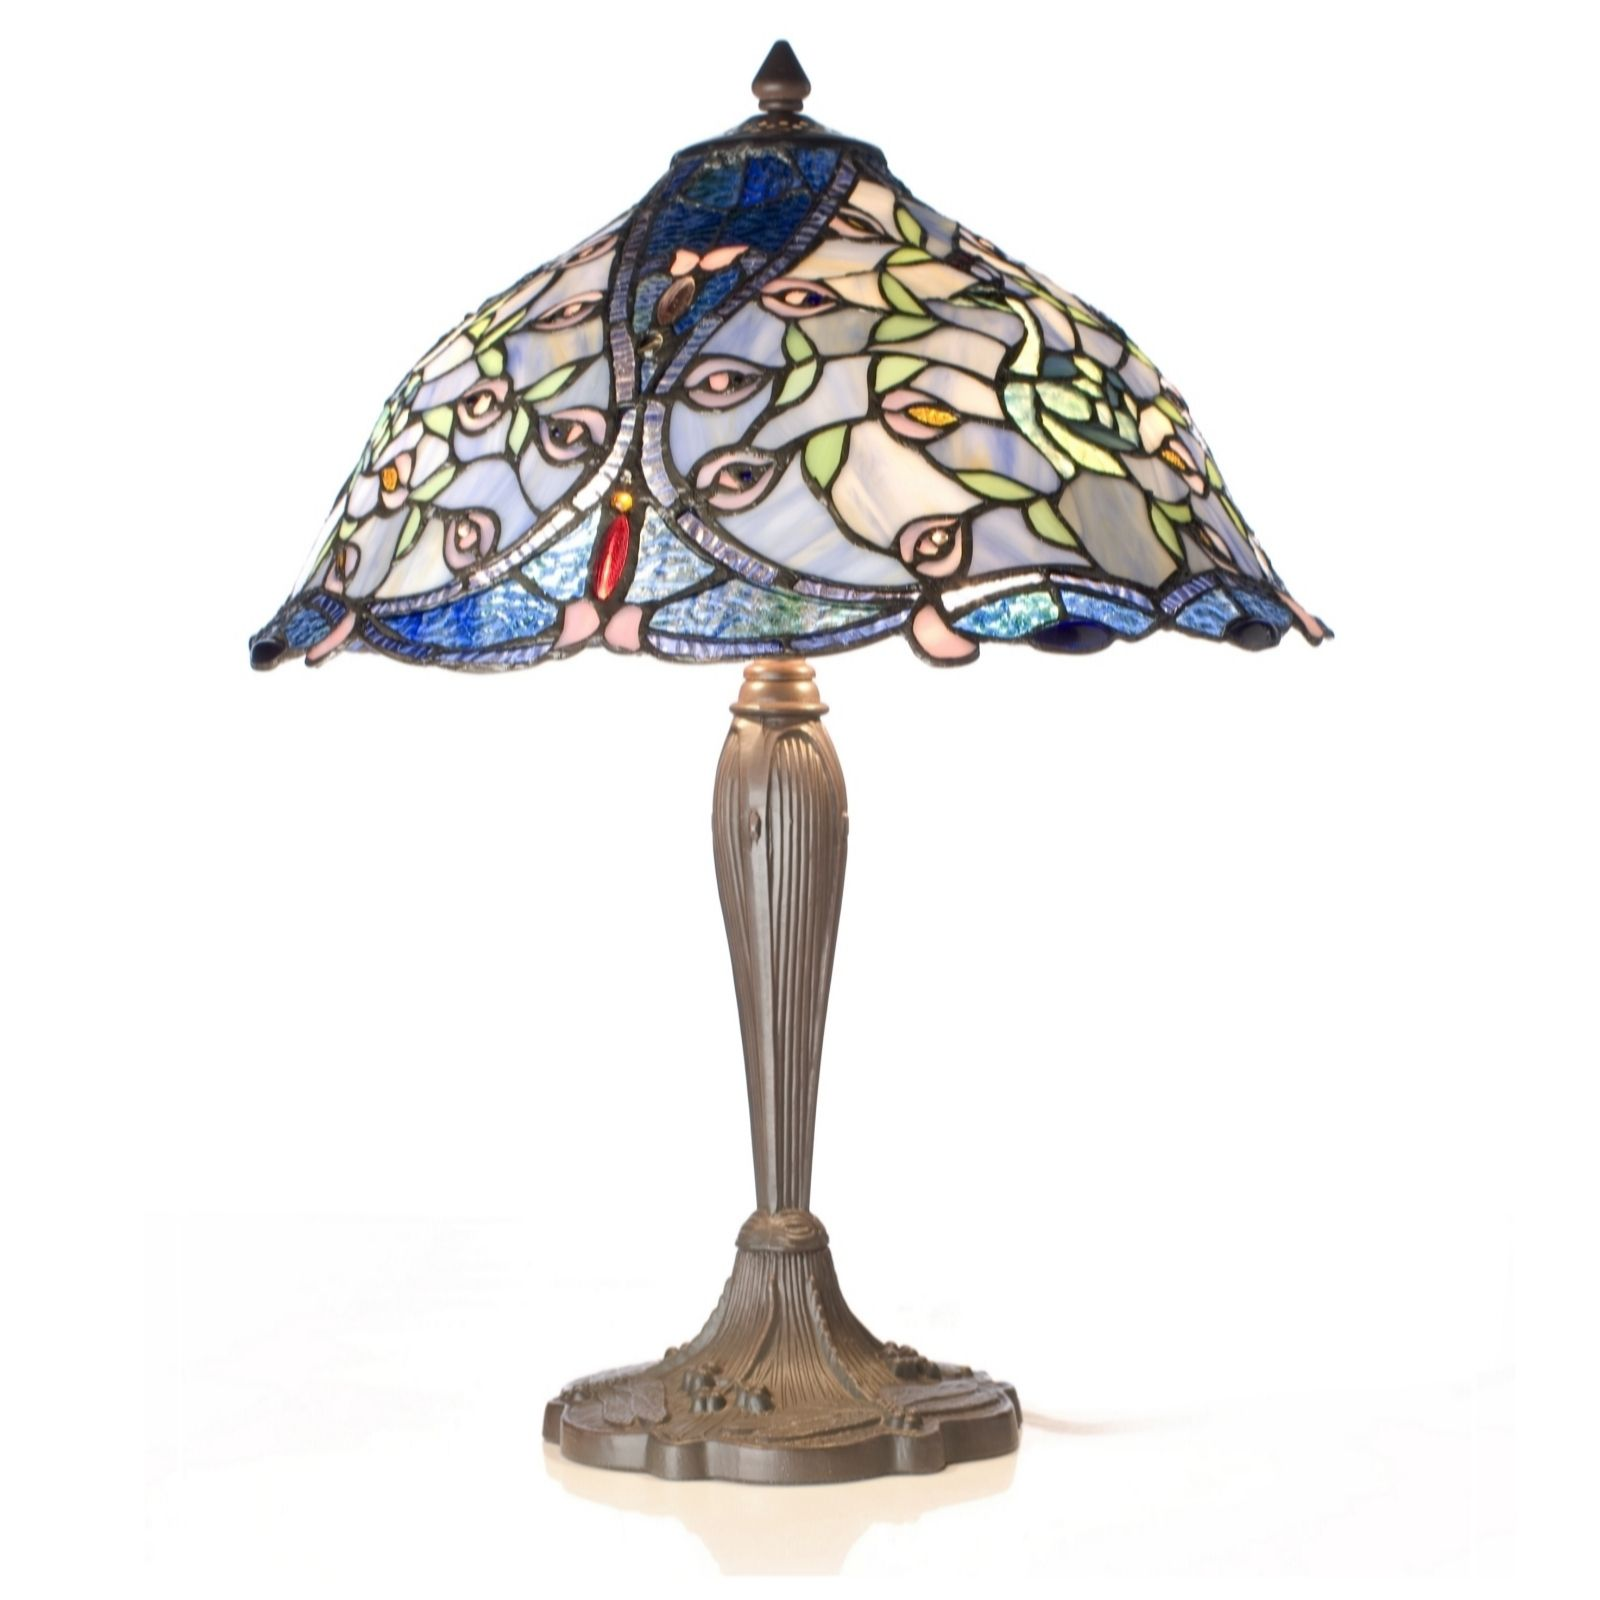 Tiffany Style Handcrafted Peacock Table Lamp - QVC UK